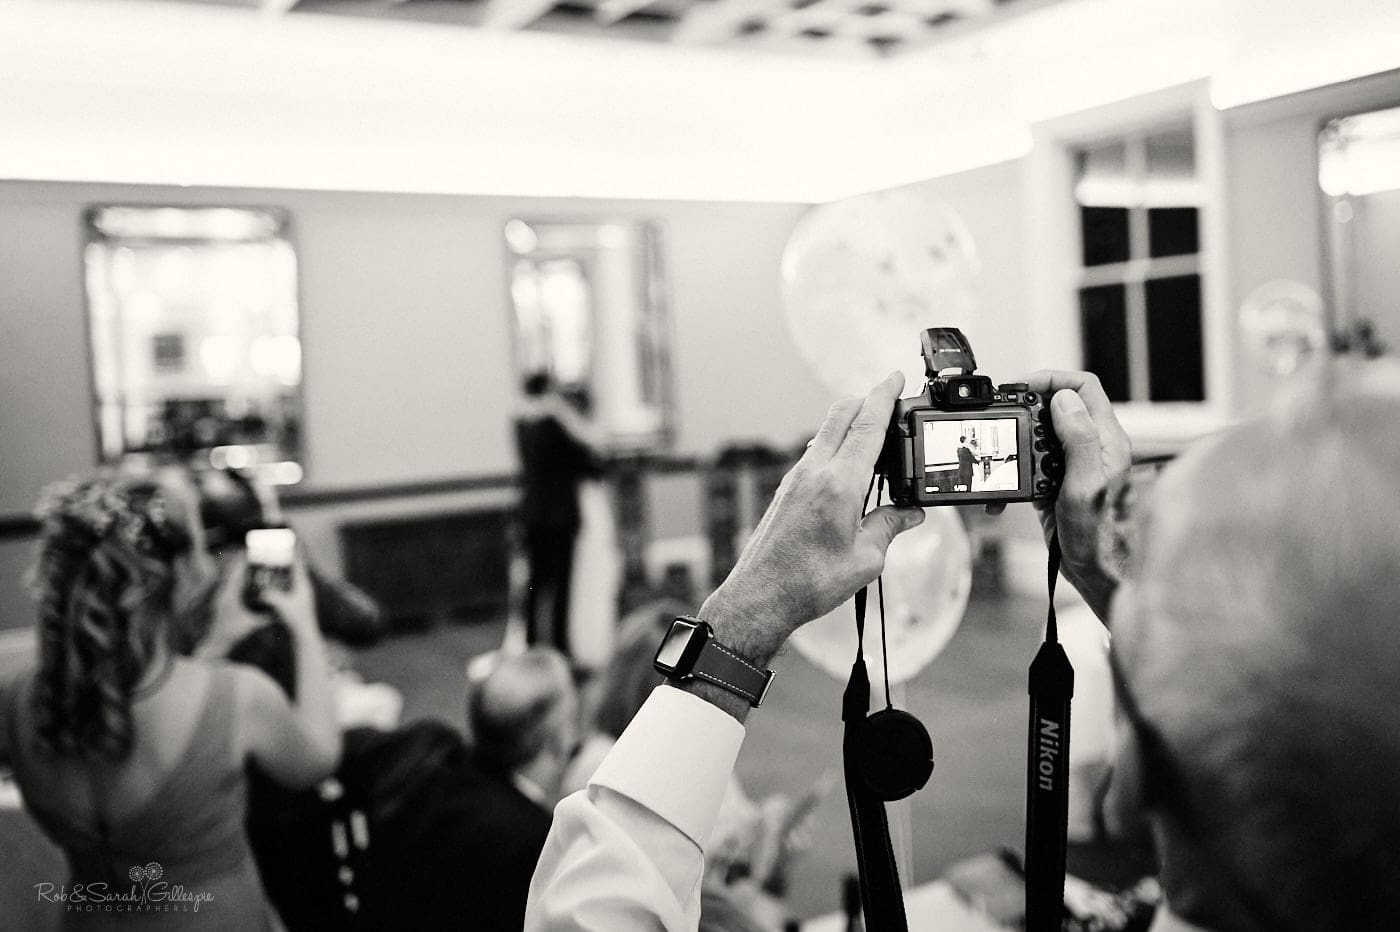 Wedding guests takes photo of bride and groom's first dance